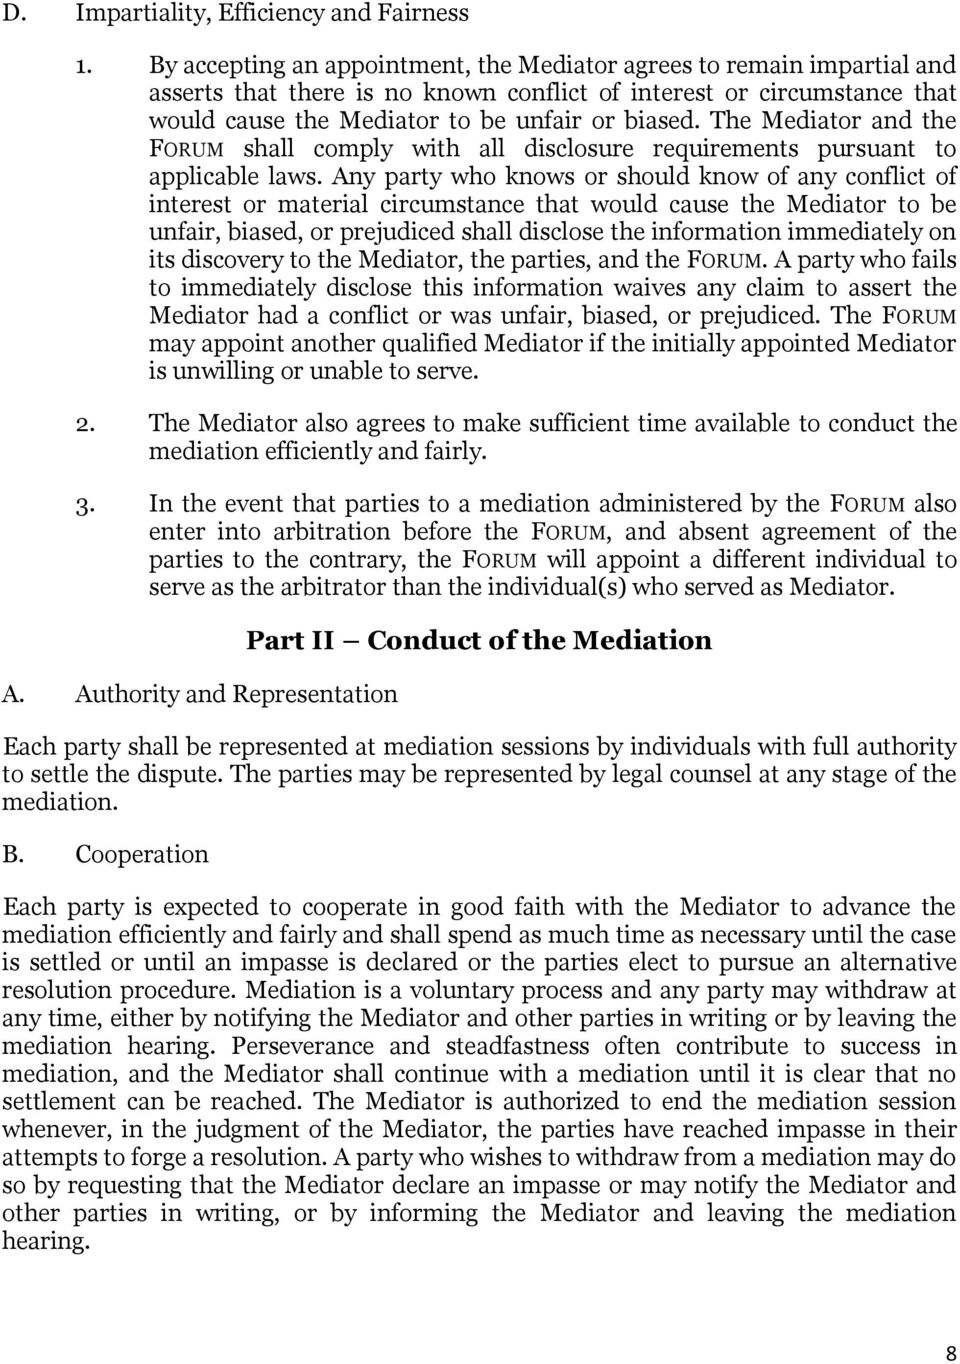 The Mediator and the FORUM shall comply with all disclosure requirements pursuant to applicable laws.